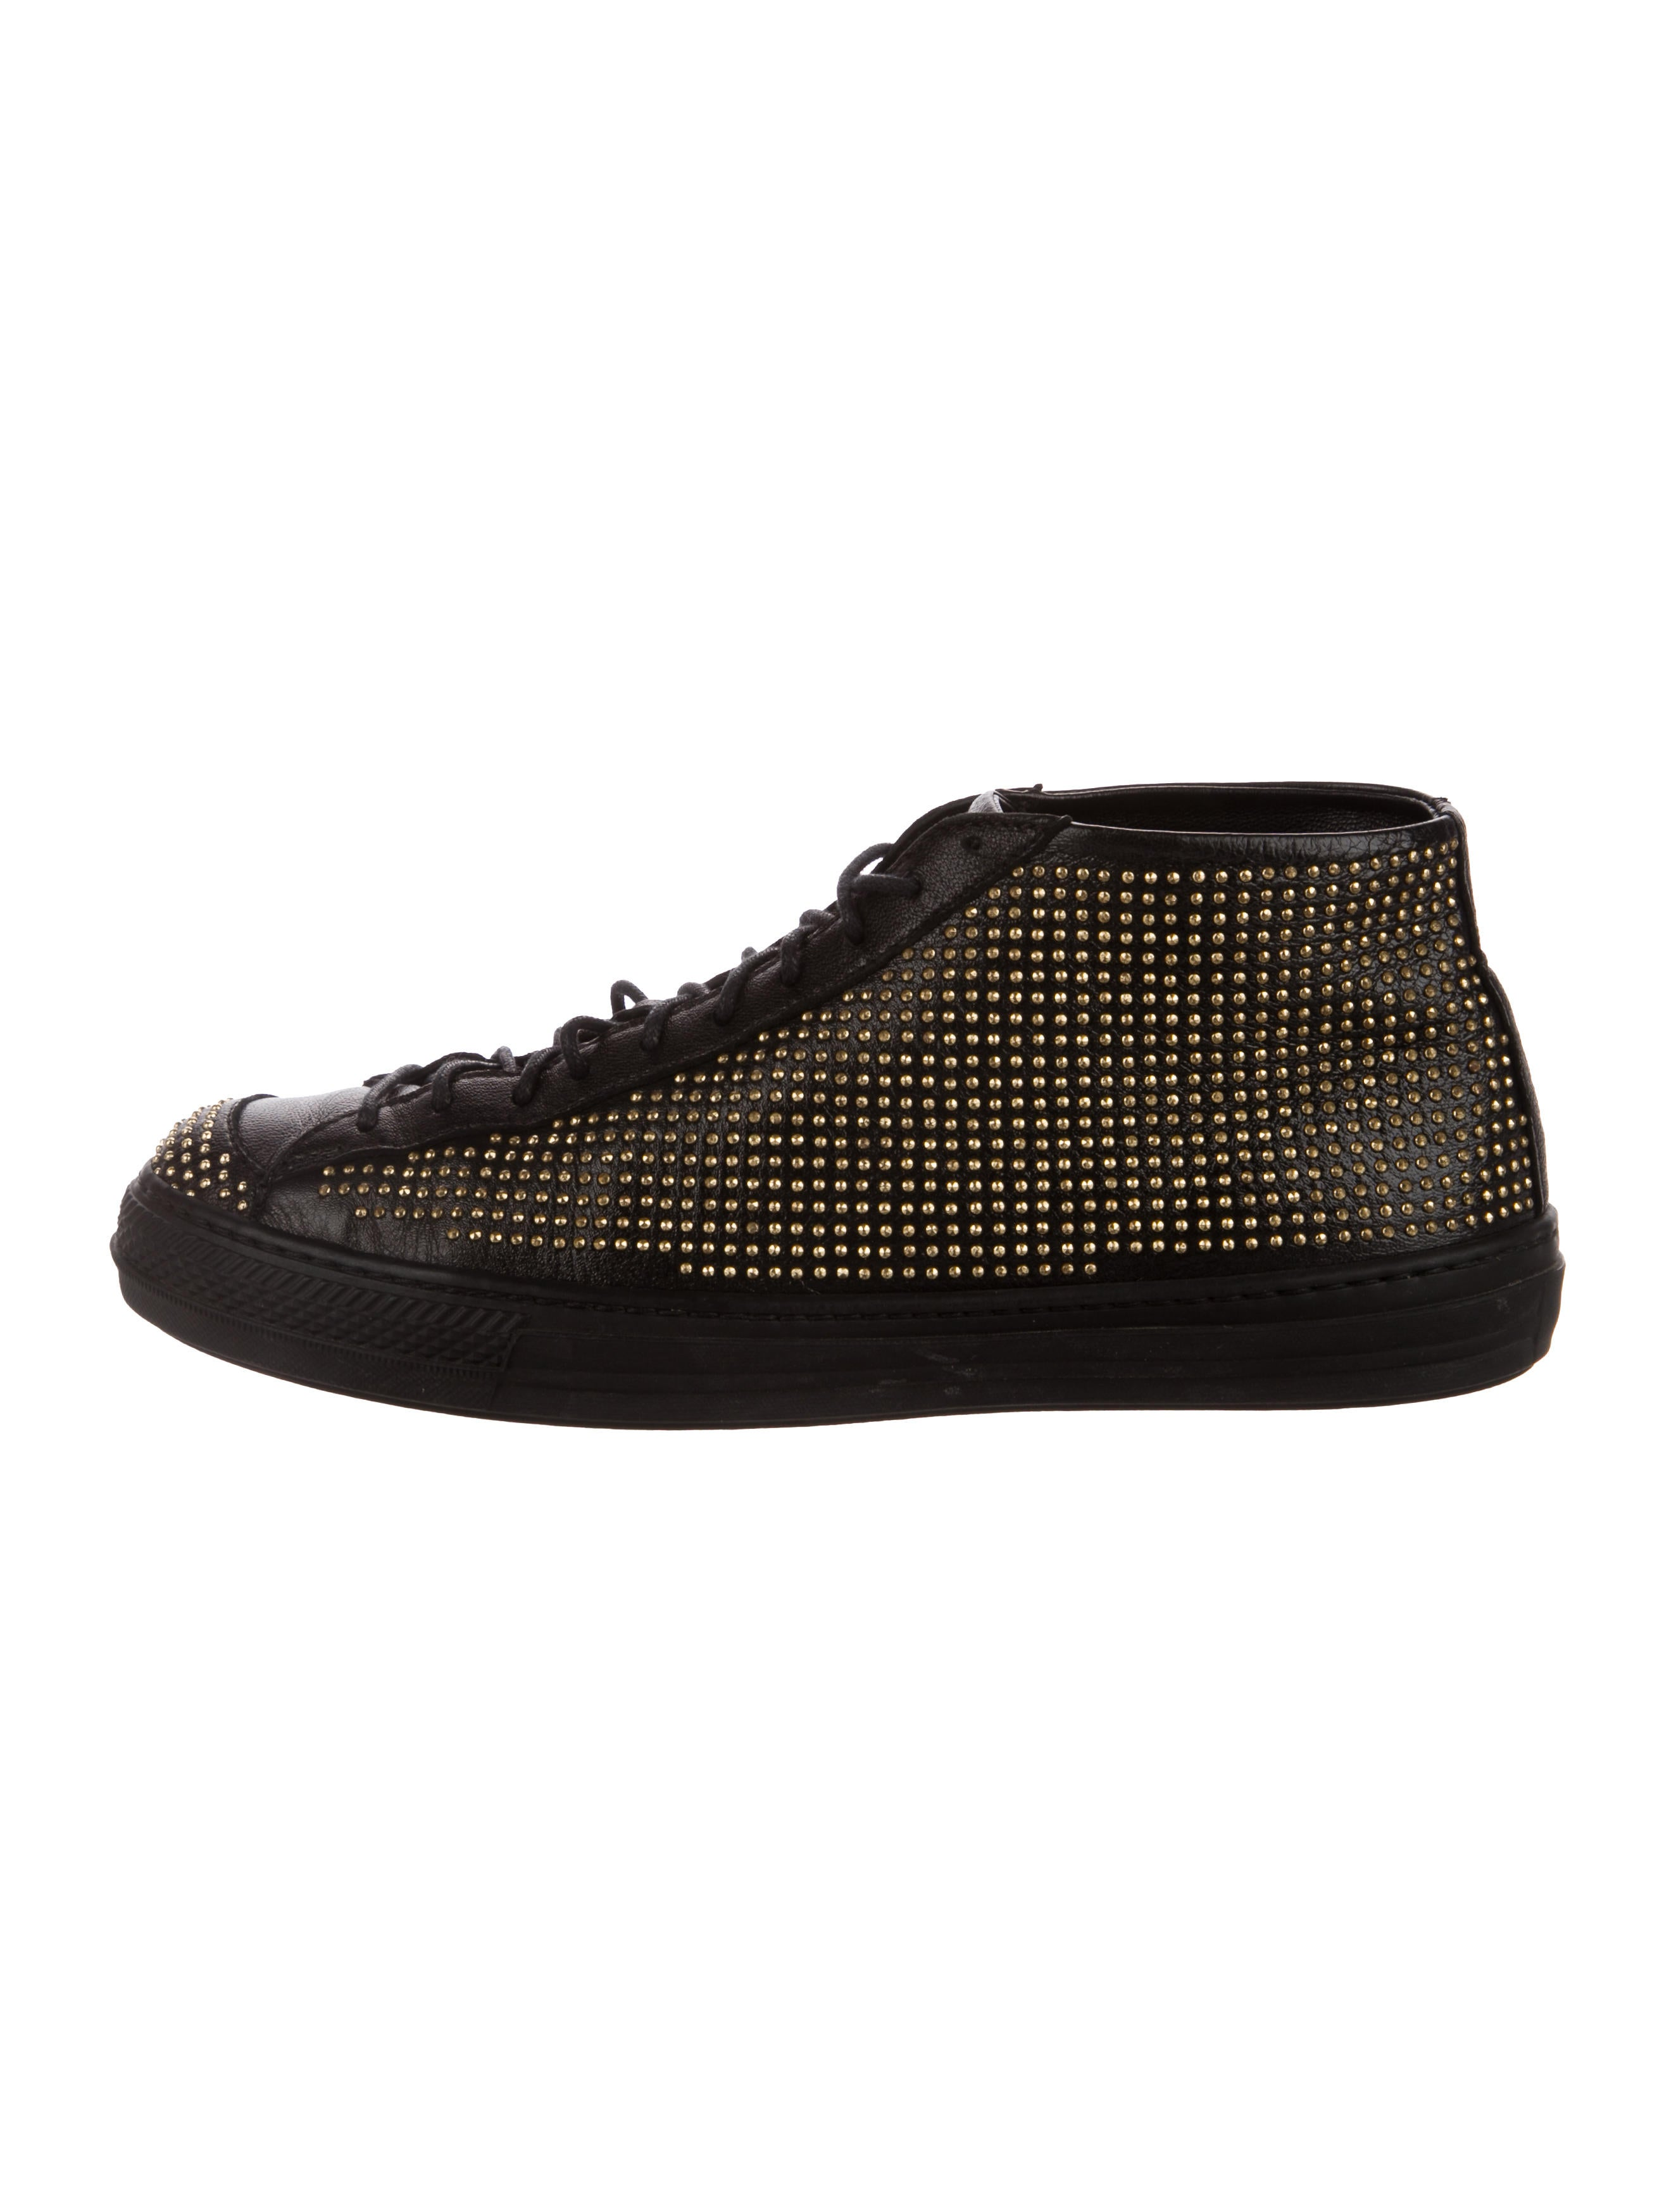 discount 2015 Burberry Fingall High-Top Sneakers discount pictures U4m5J